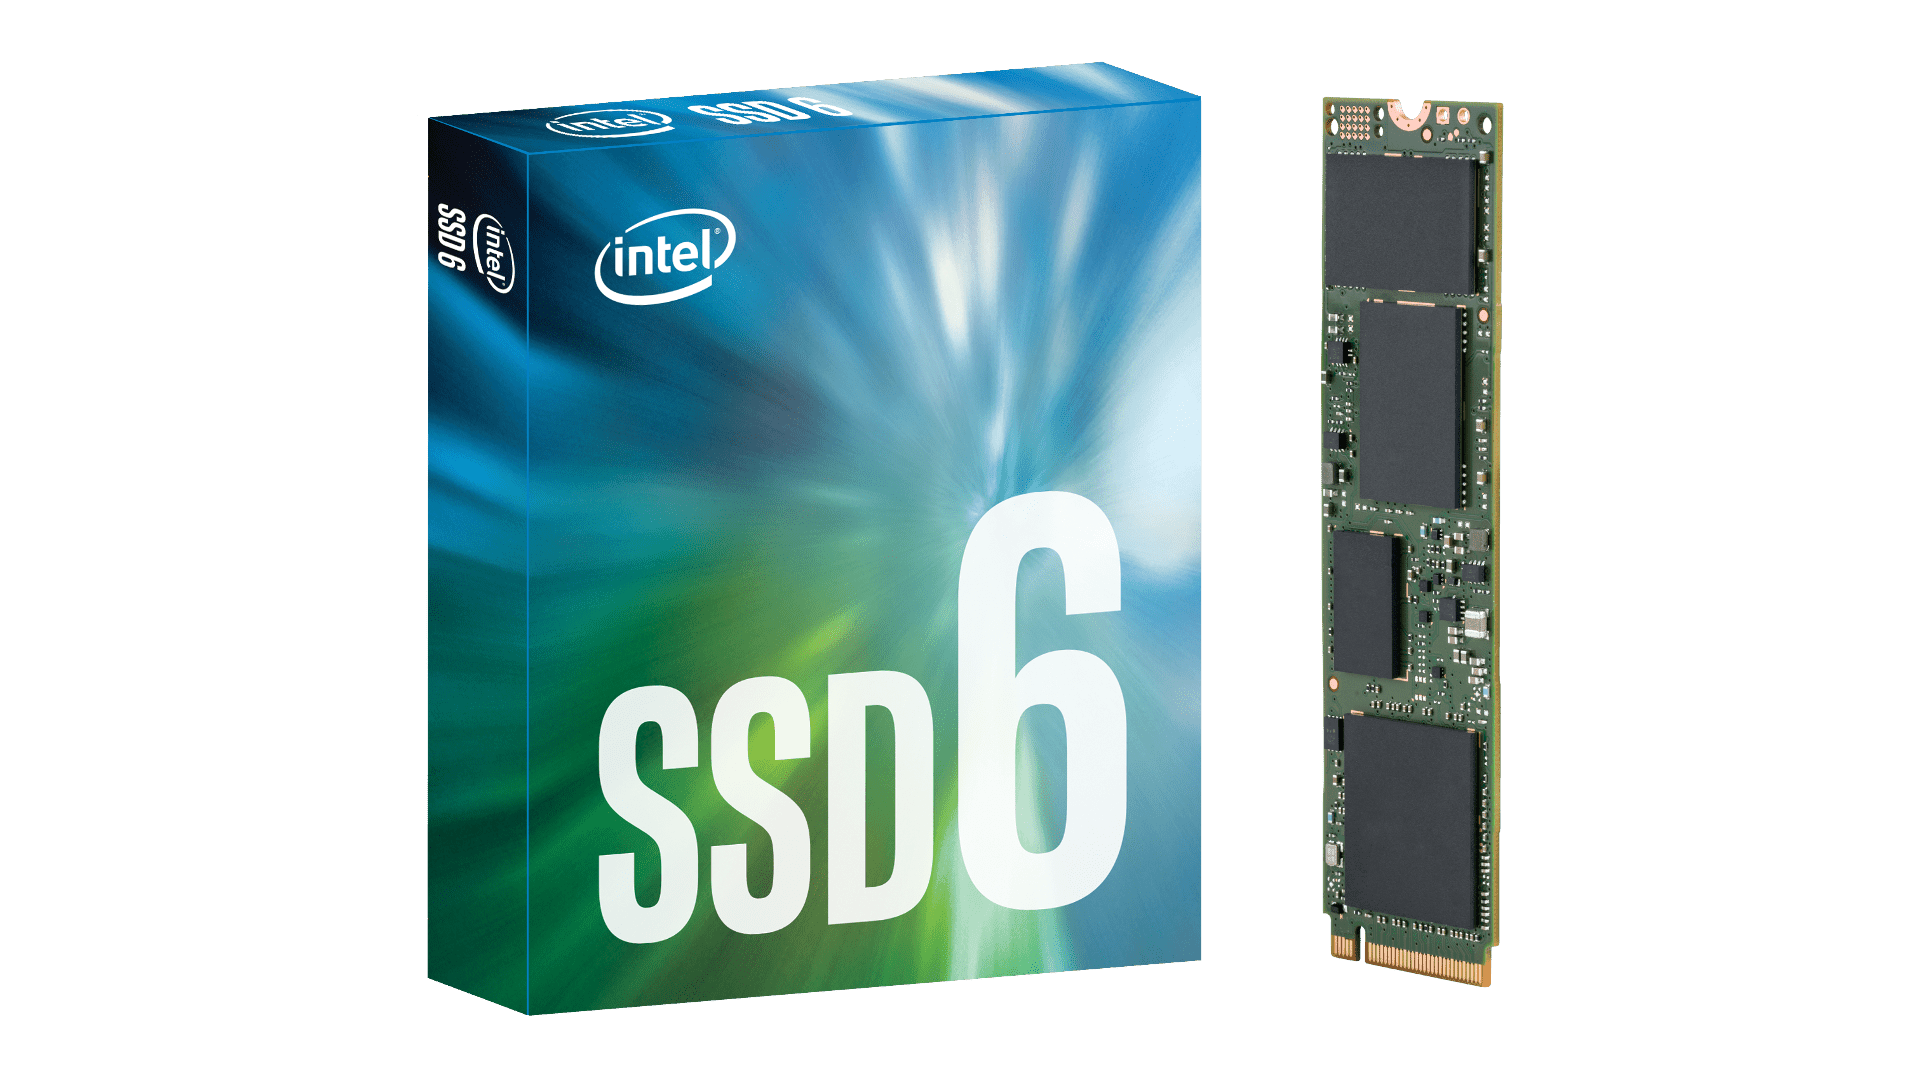 Intel SSD 600p M.2 Solid State Drive